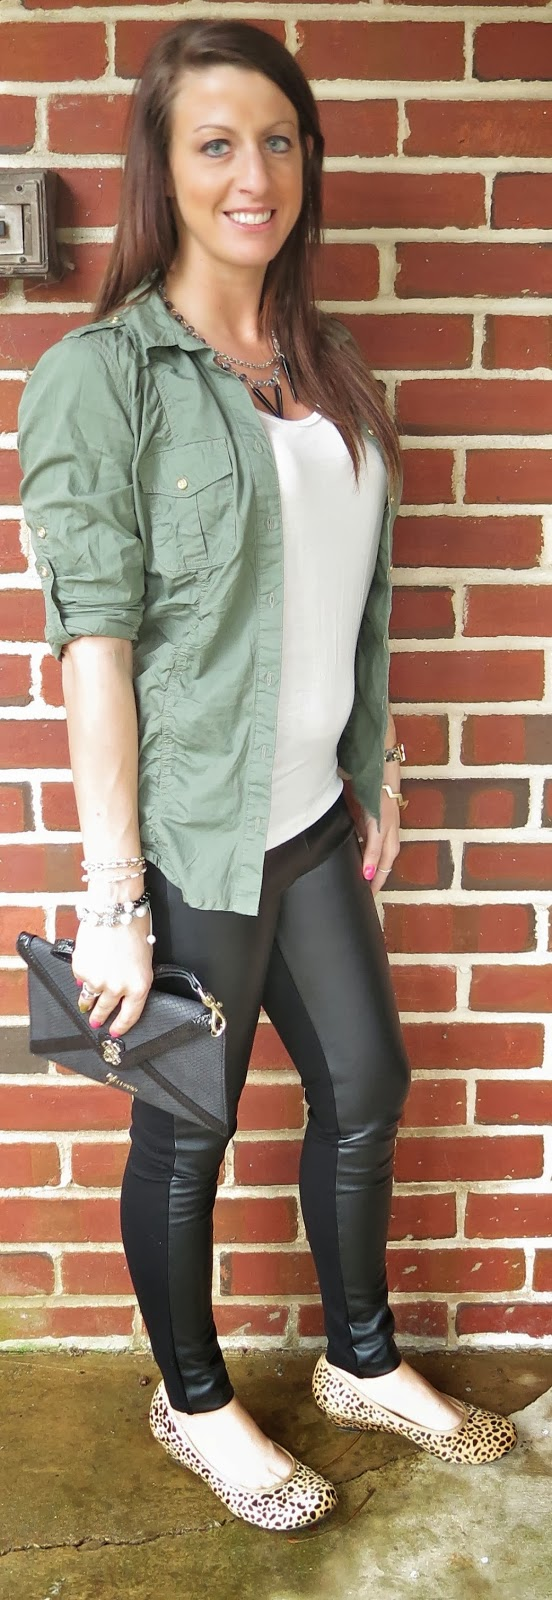 leopard shoes, fashion, outfit, leather pants, hooter shoes, faux leather, leggings, earthy tones